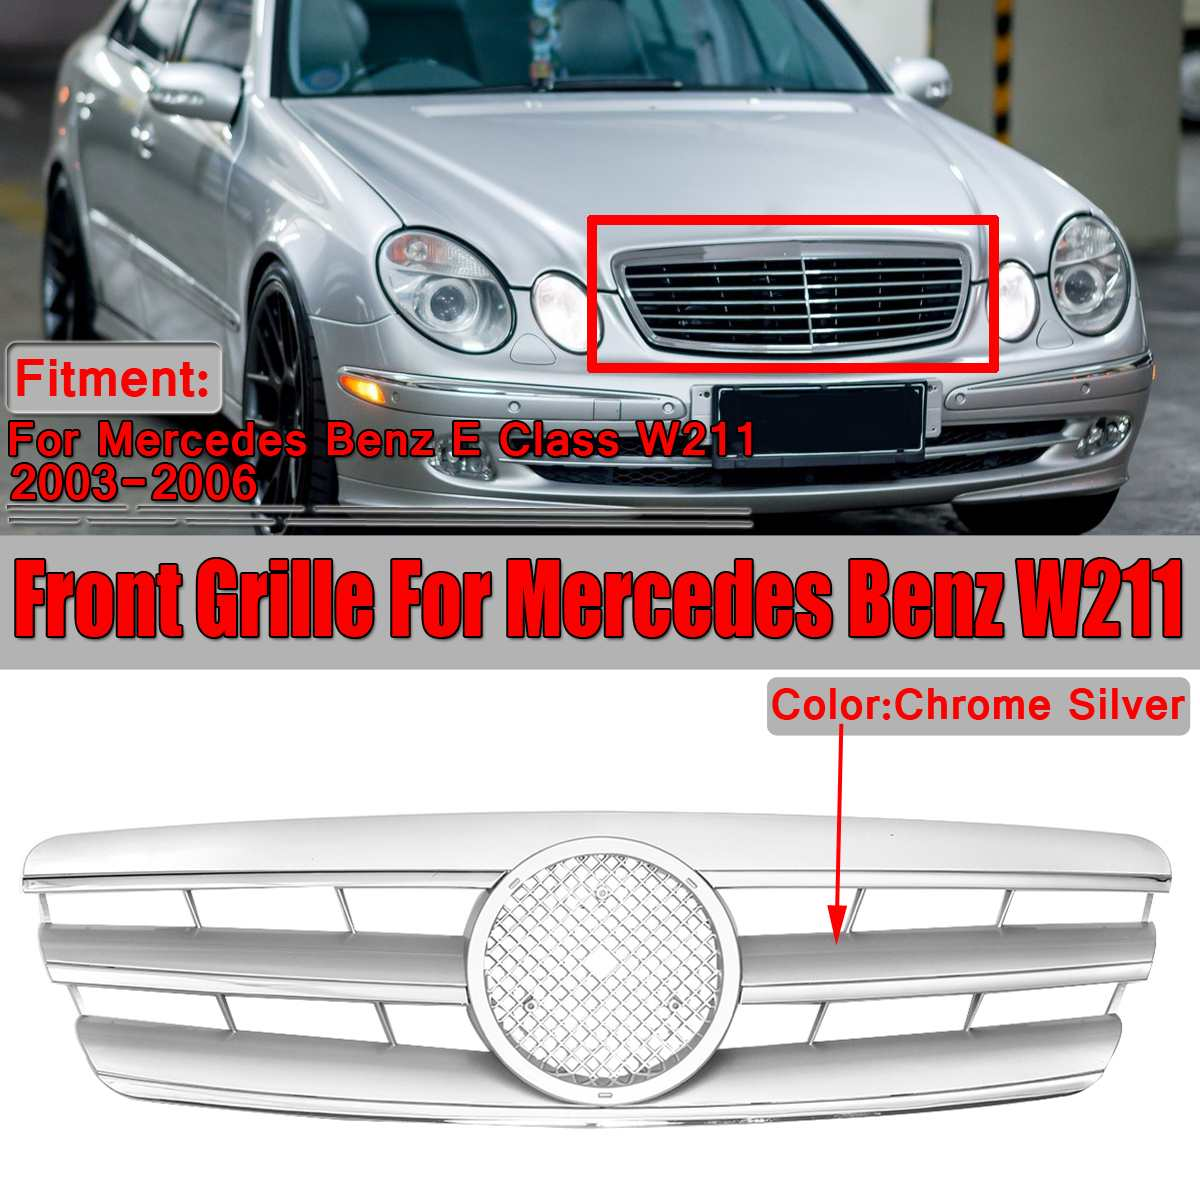 New <font><b>W211</b></font> <font><b>Grill</b></font> Chrome Silver Car Front Bumper <font><b>Grill</b></font> Grille For <font><b>Mercedes</b></font> For Benz E Class <font><b>W211</b></font> Grille 2003-06 Without Emblem image